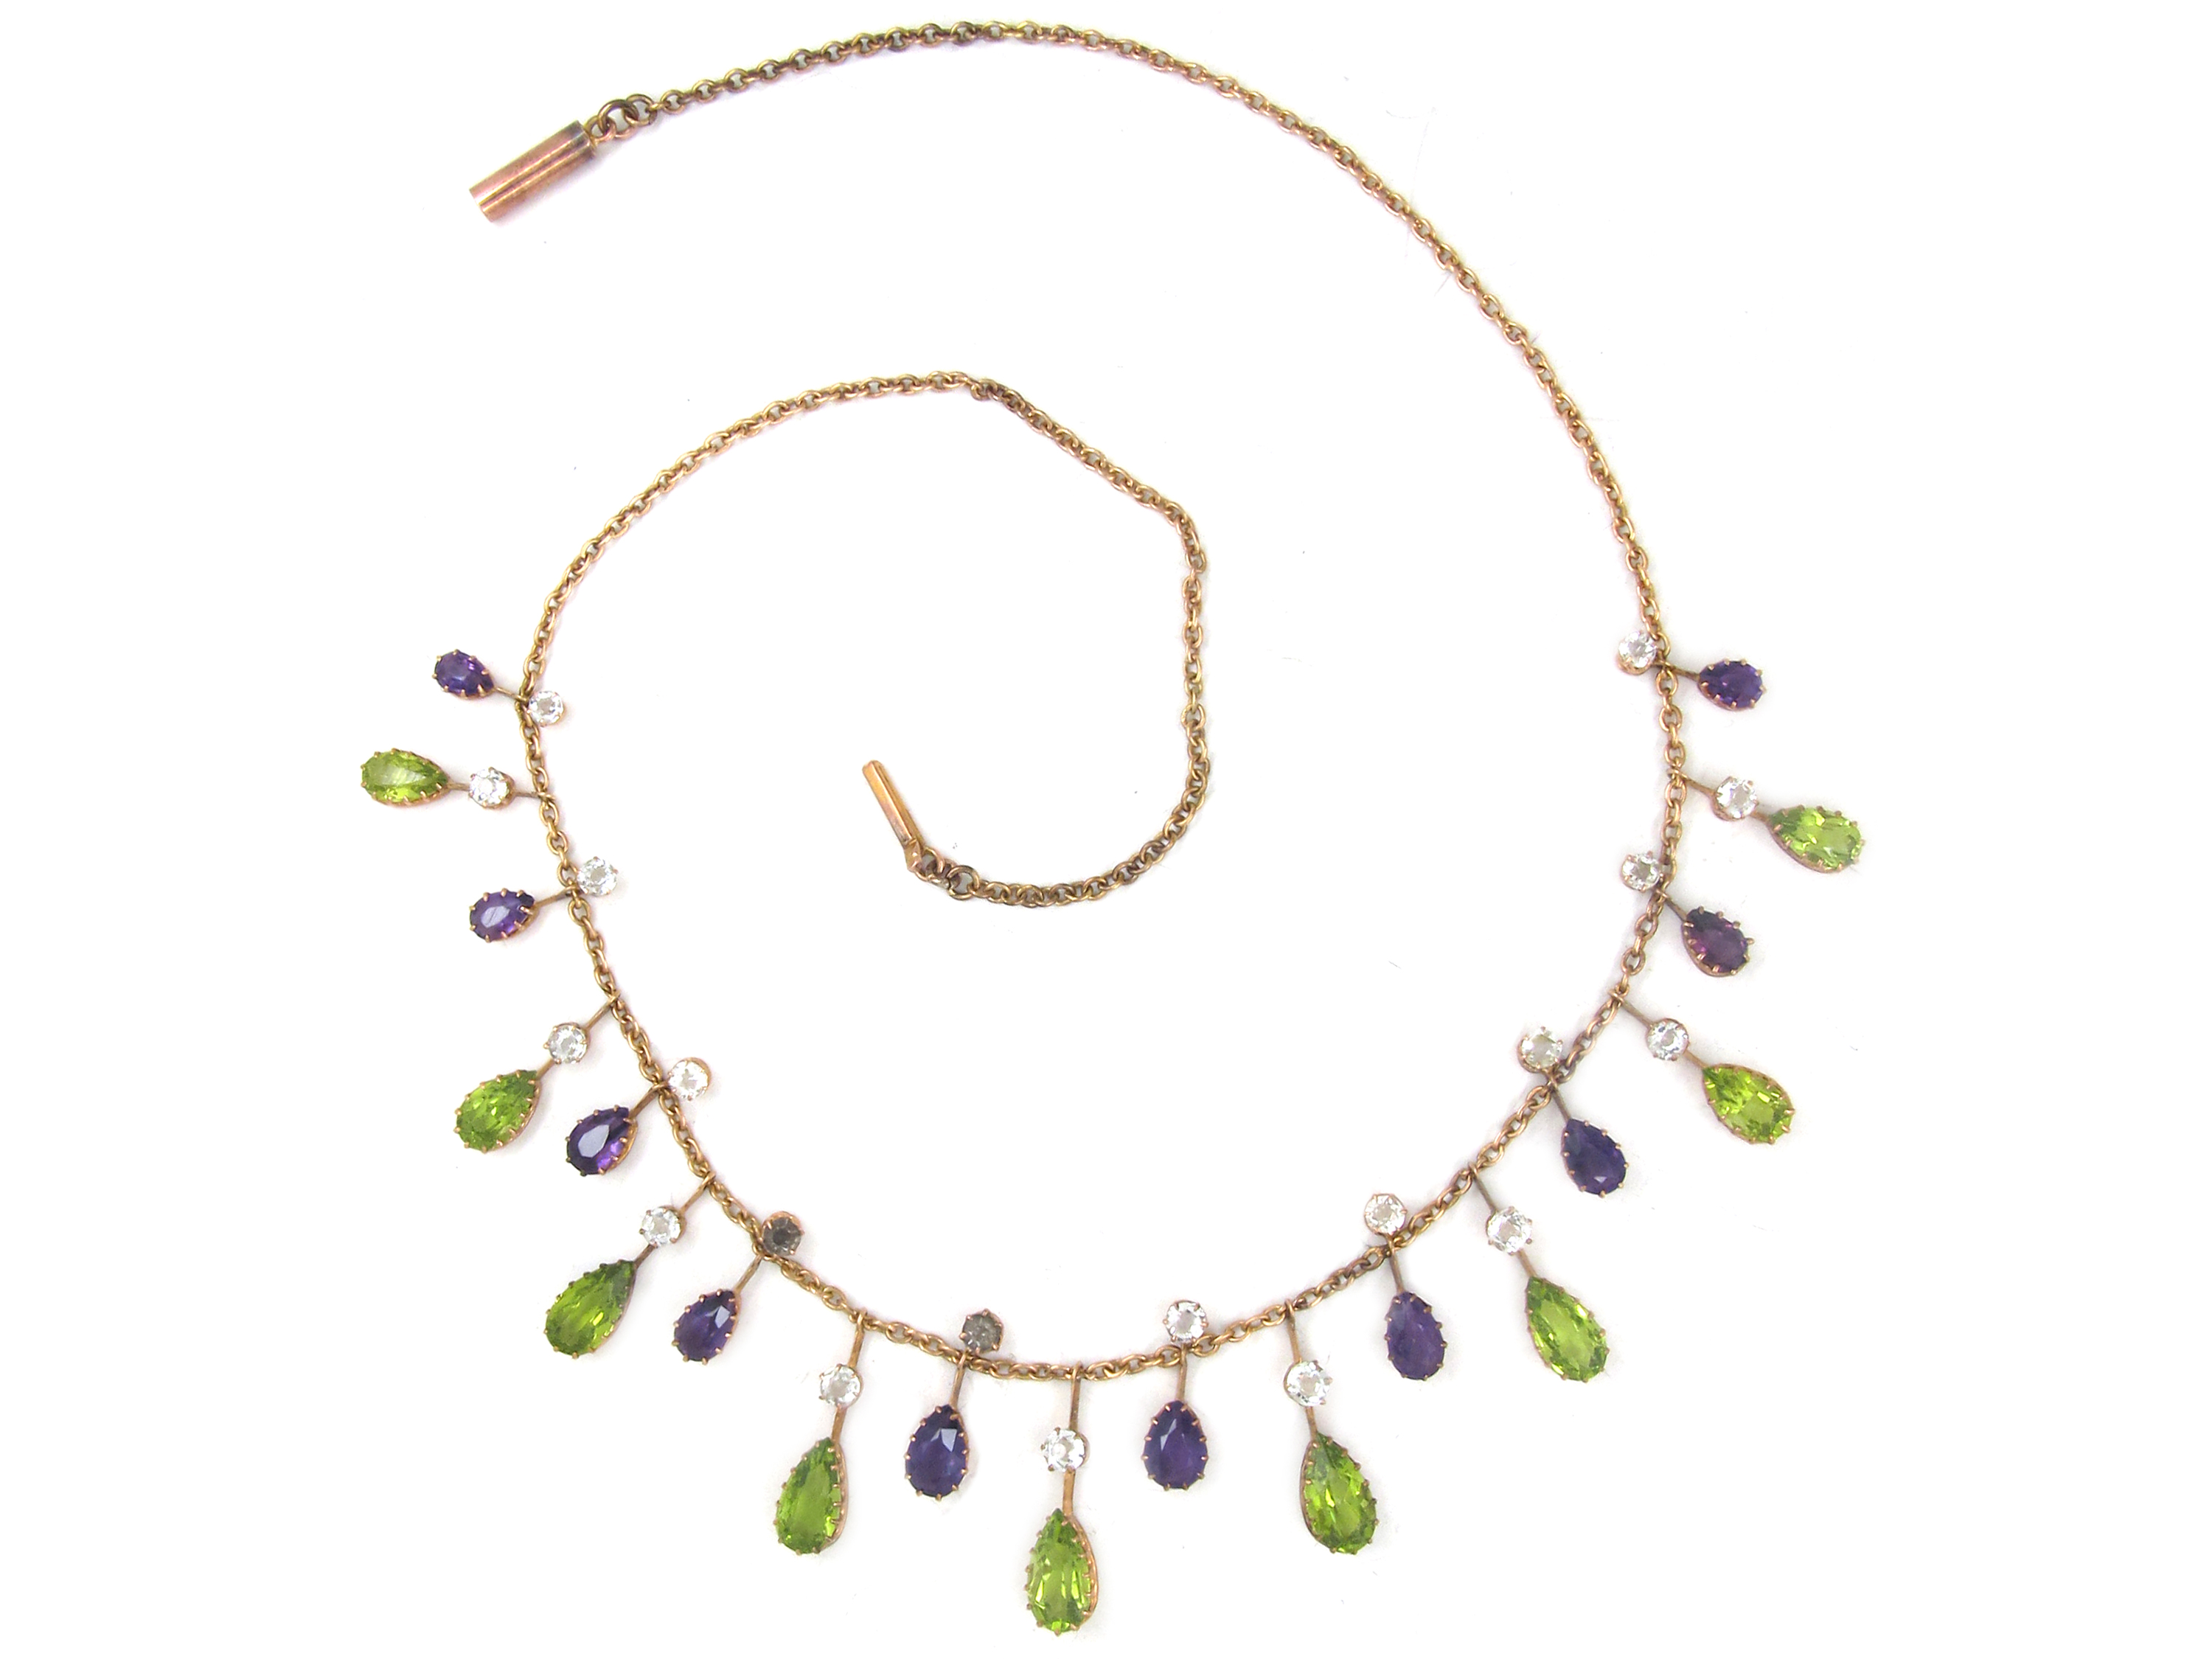 9ct Gold Suffragette Necklace